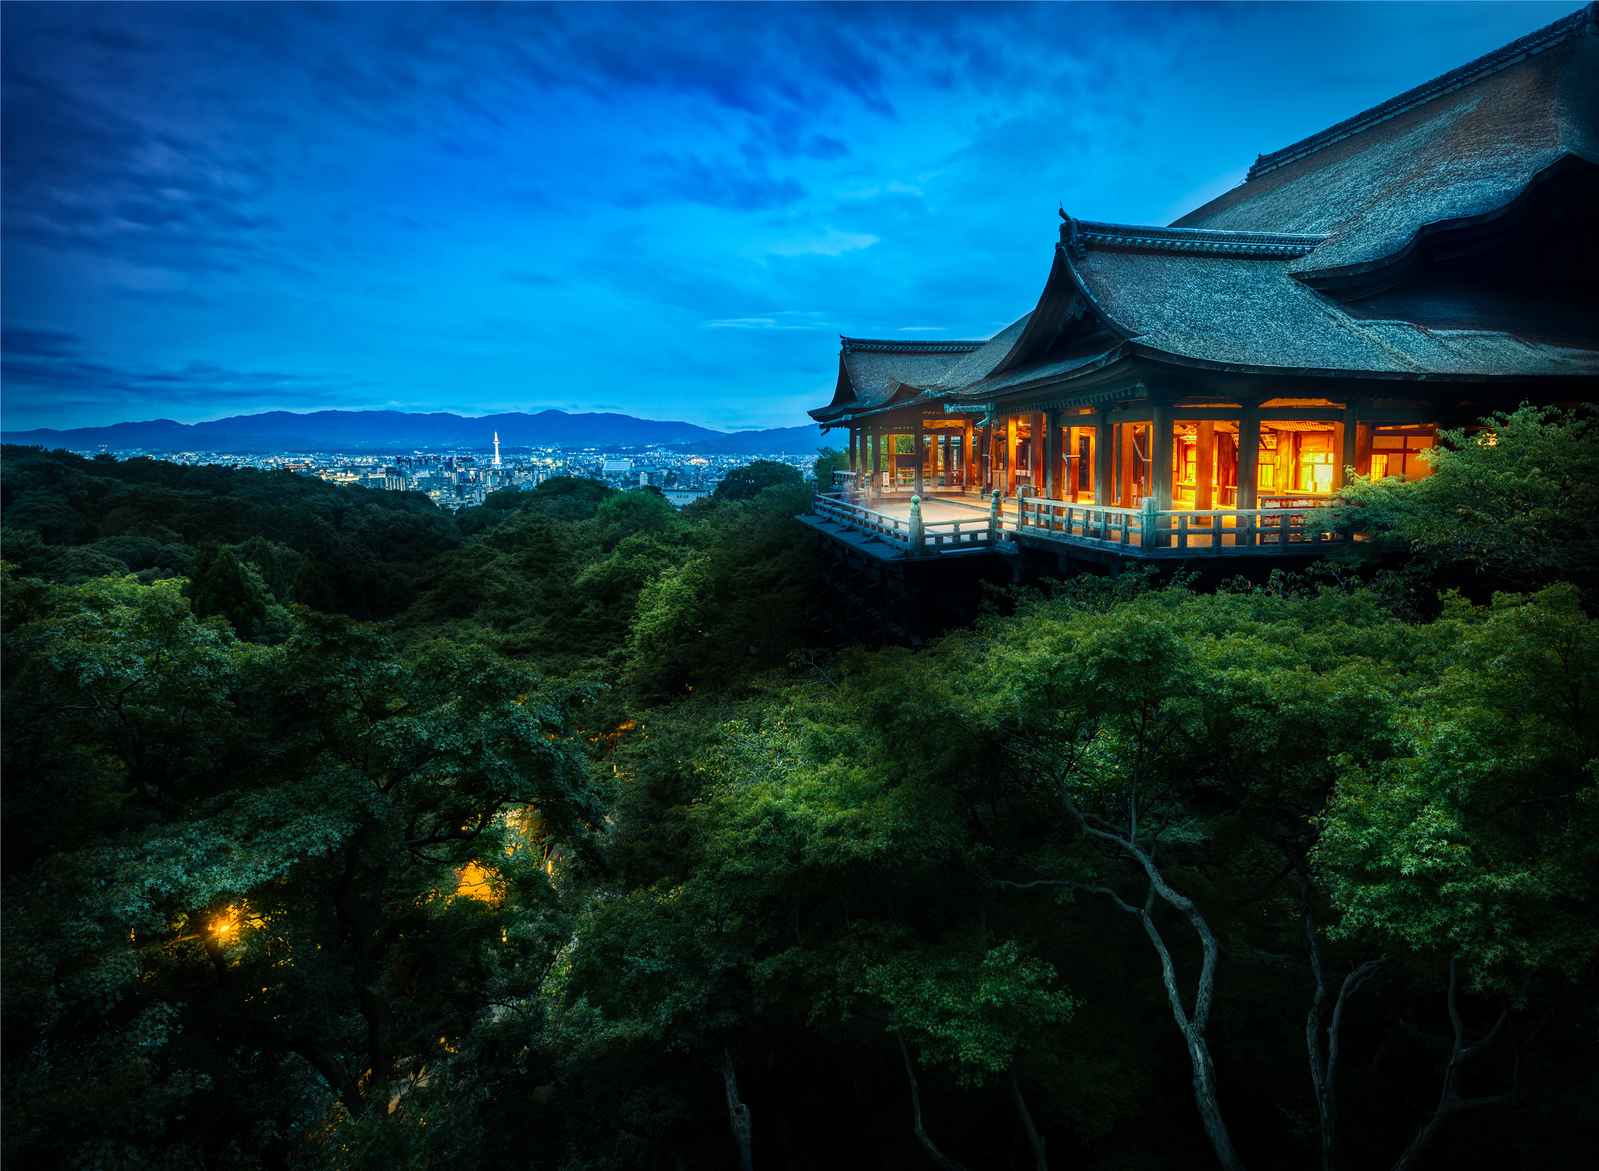 The Treetop Temple in Kyoto of Kiyomizu-dera